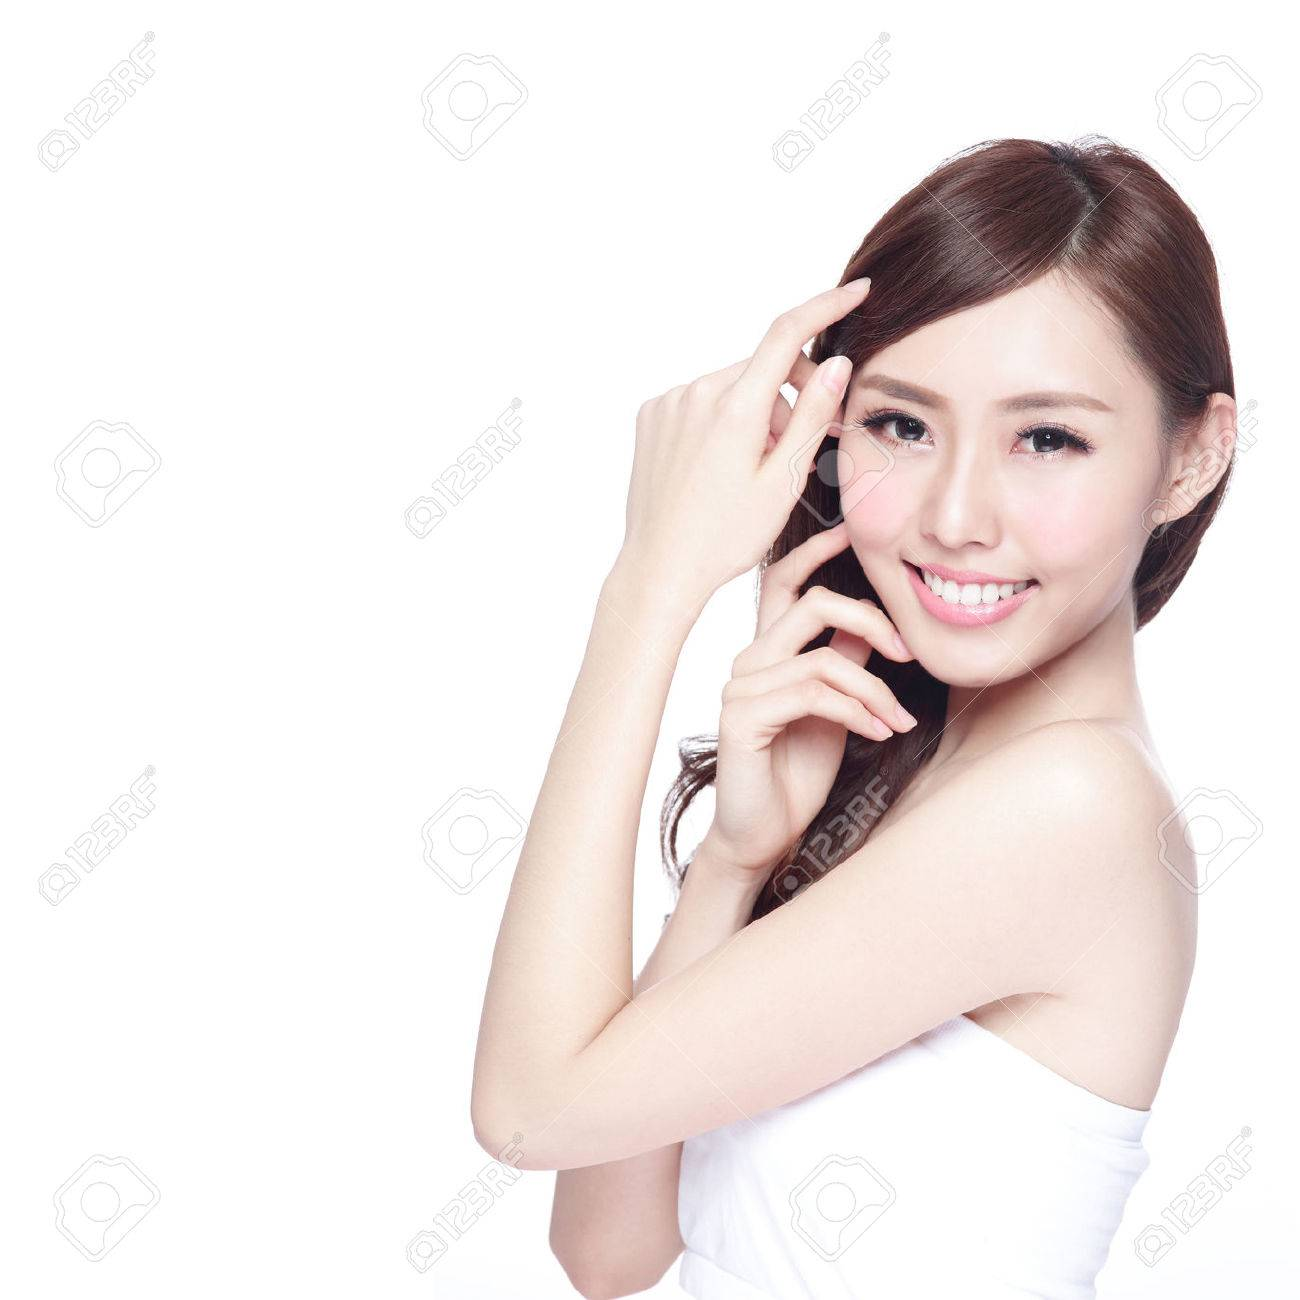 Beauty woman with charming smile to you with health skin, teeth and hair isolated on white background, asian beauty Stock Photo - 53522345